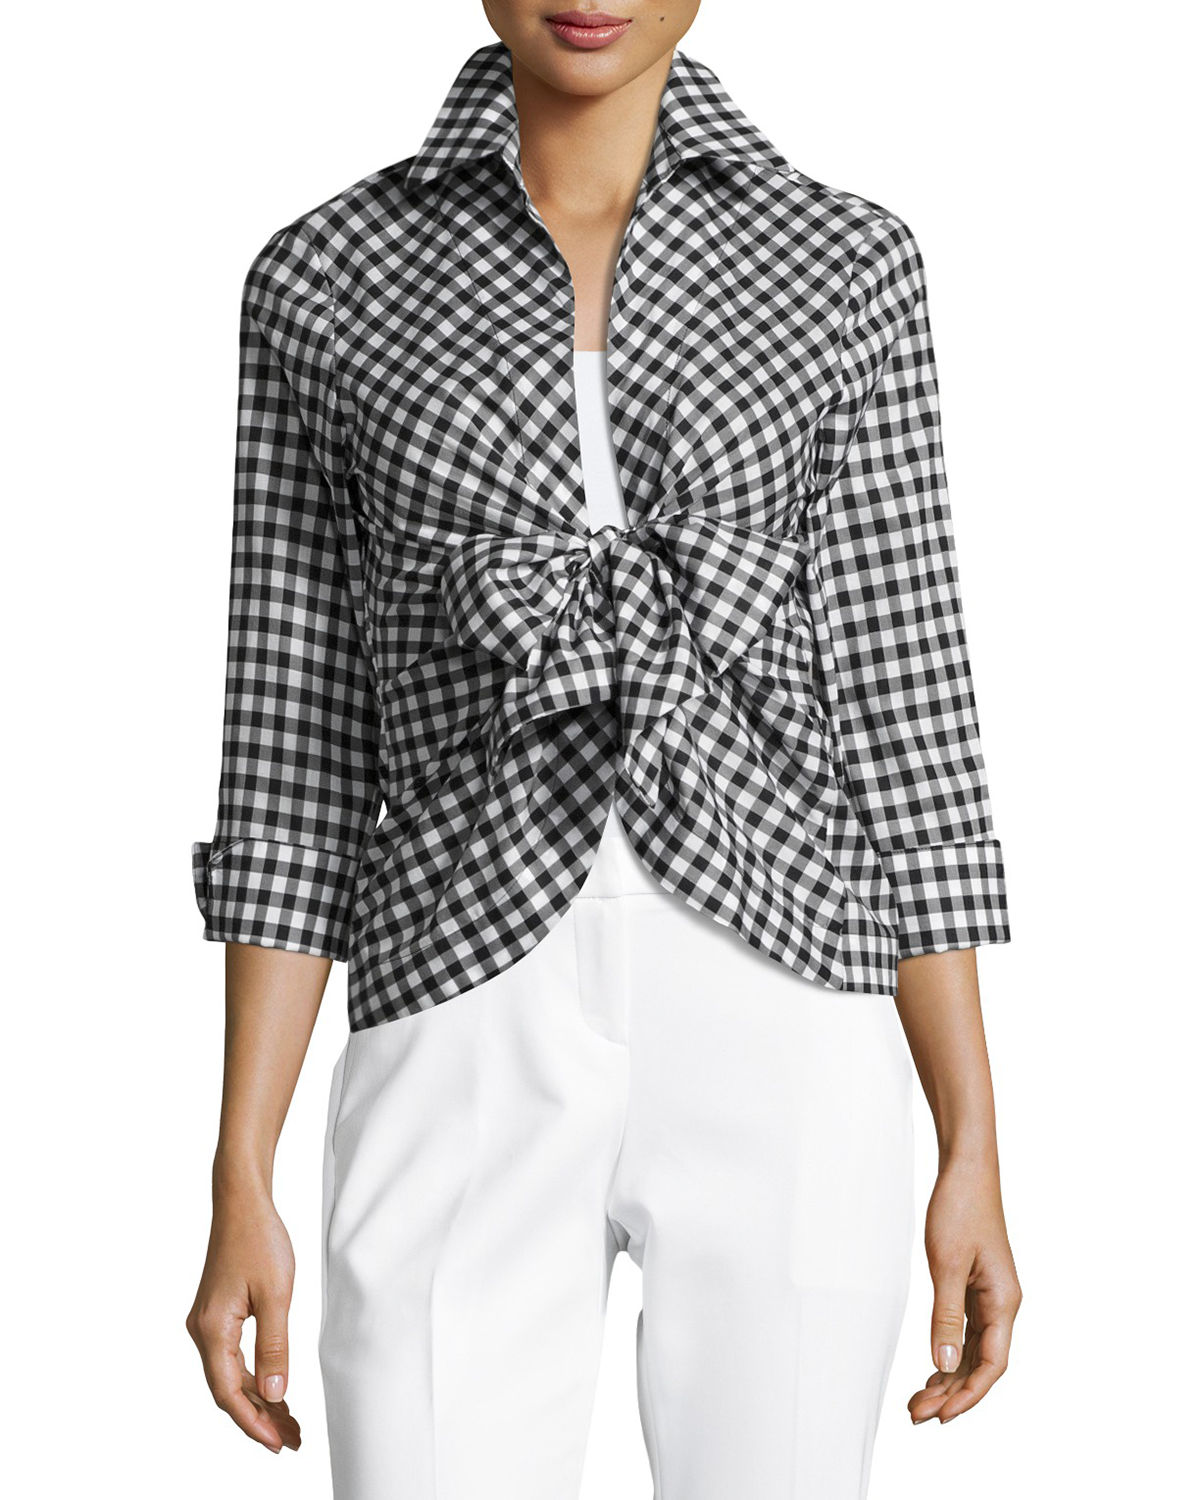 Structured Cotton Blouses For Spring Summer